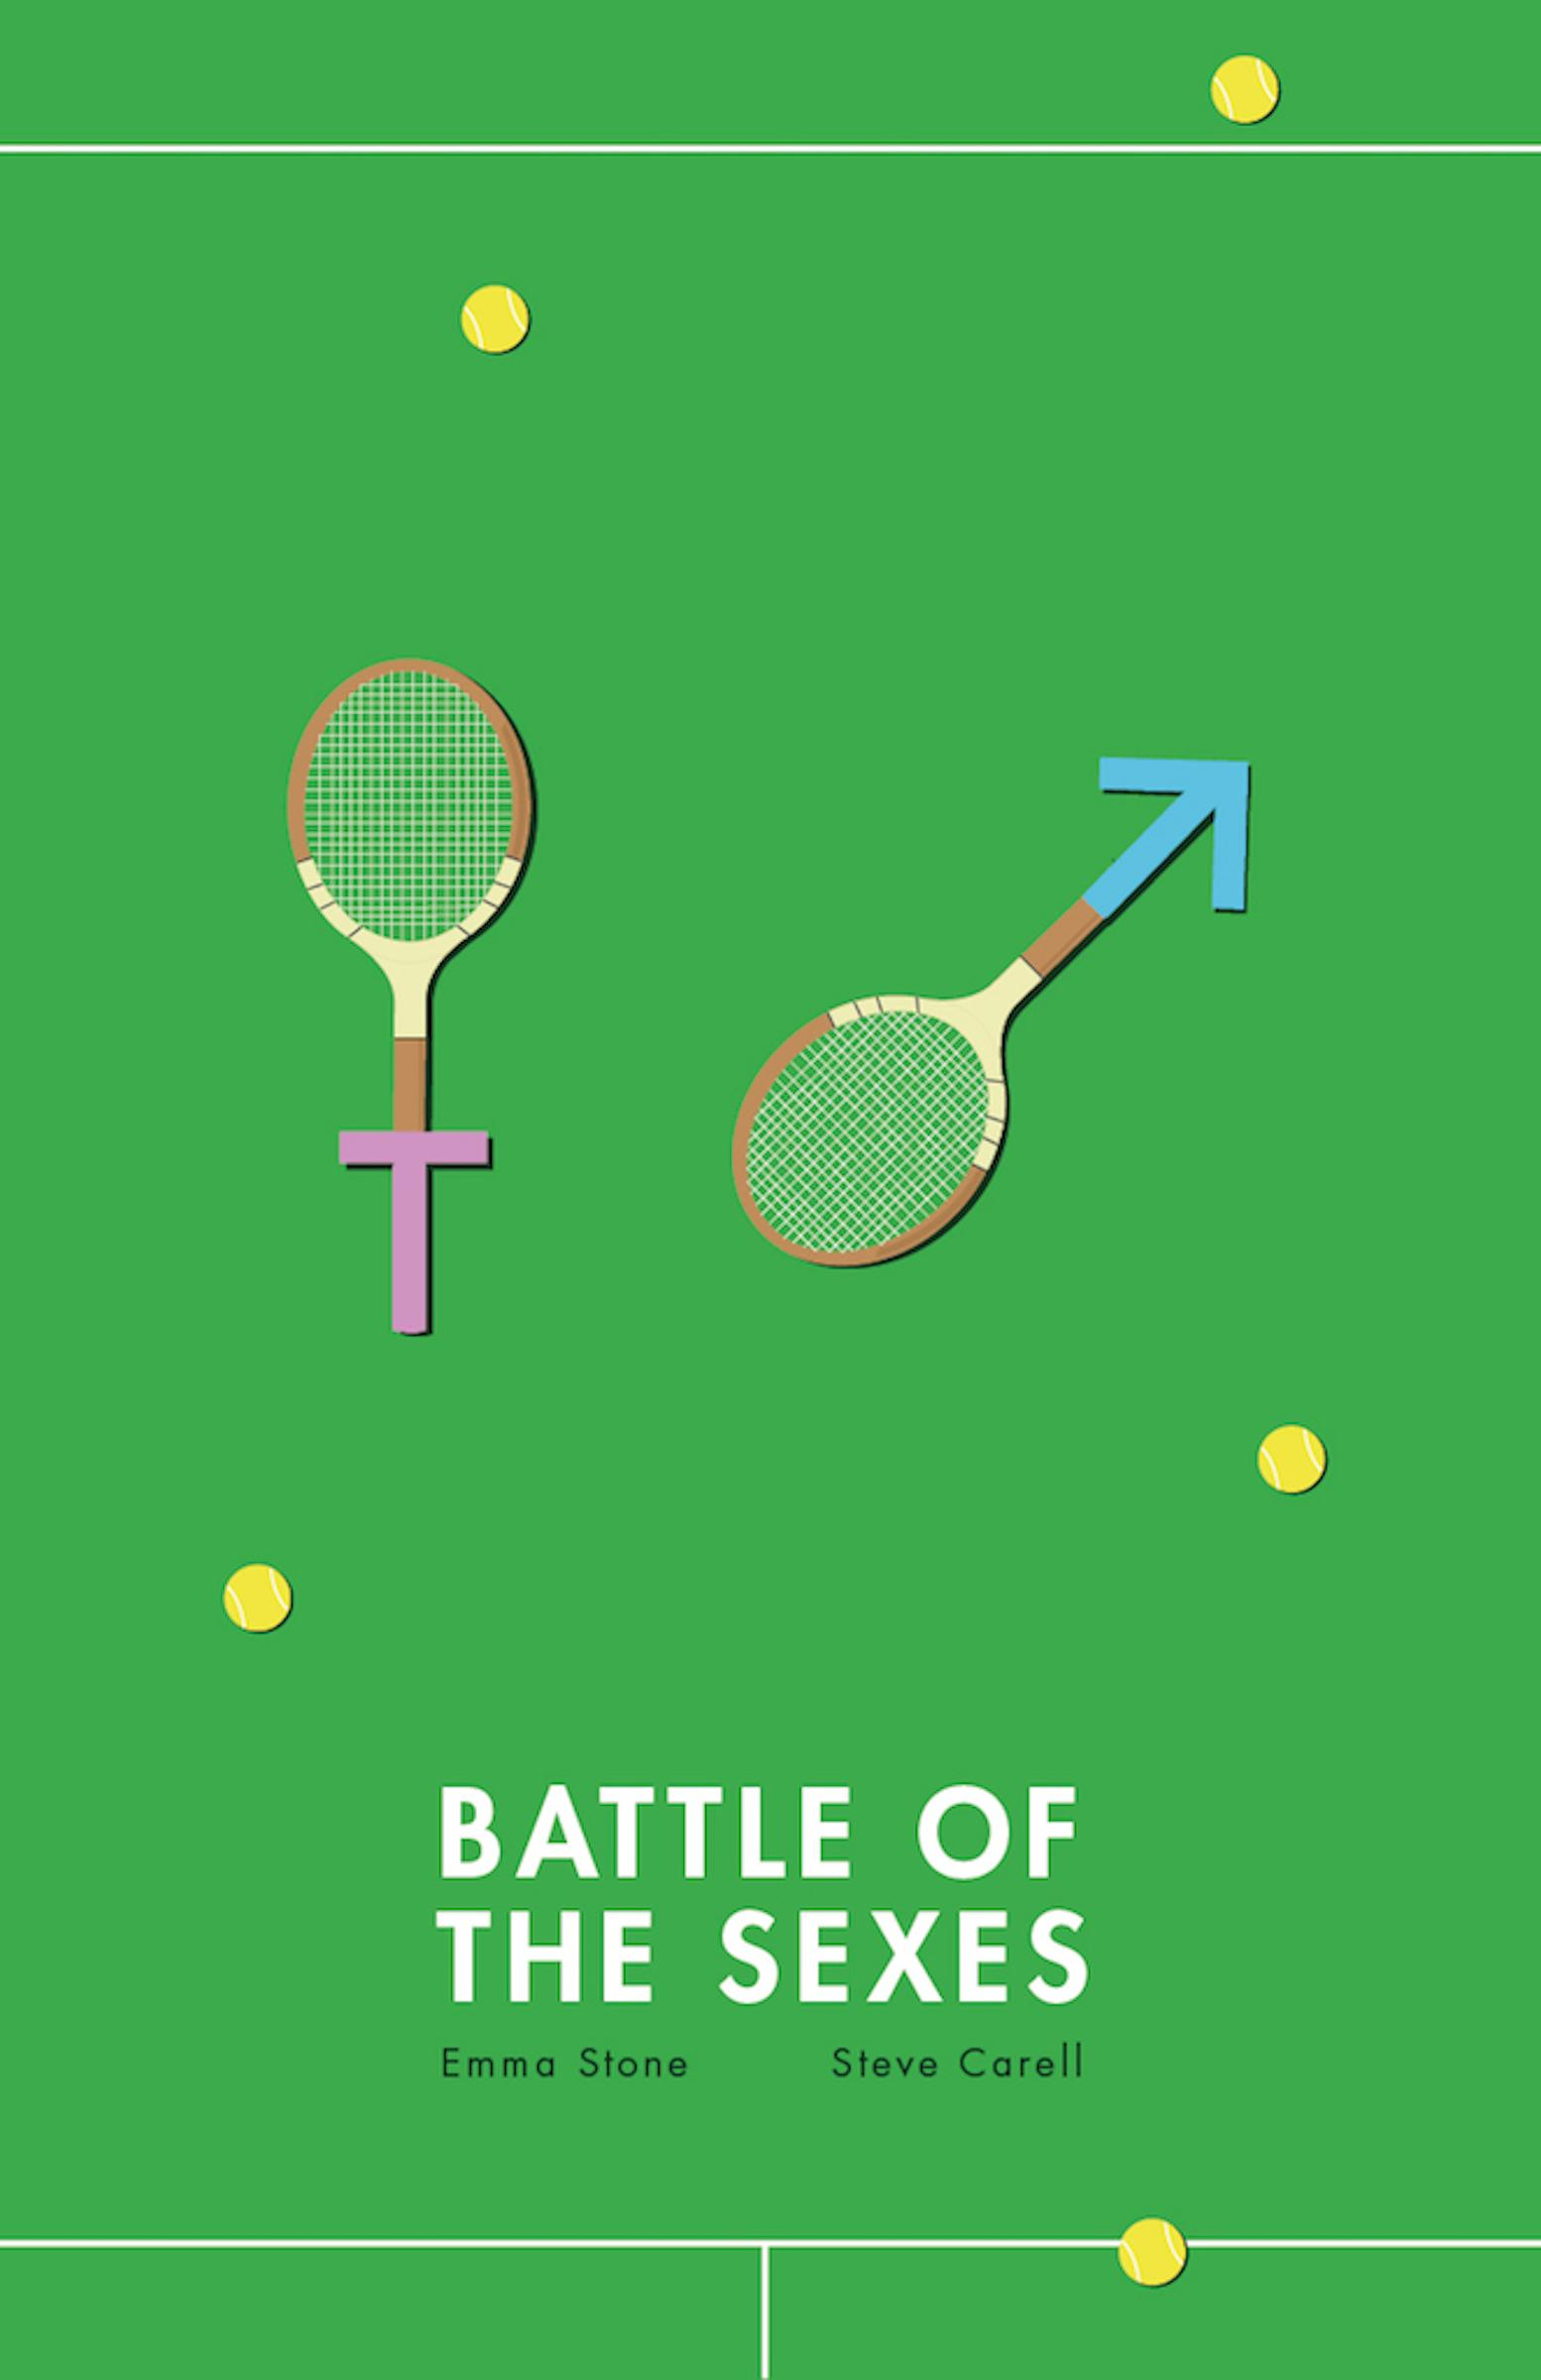 Fox Searchlight Print Ad - Battle of the Sexes